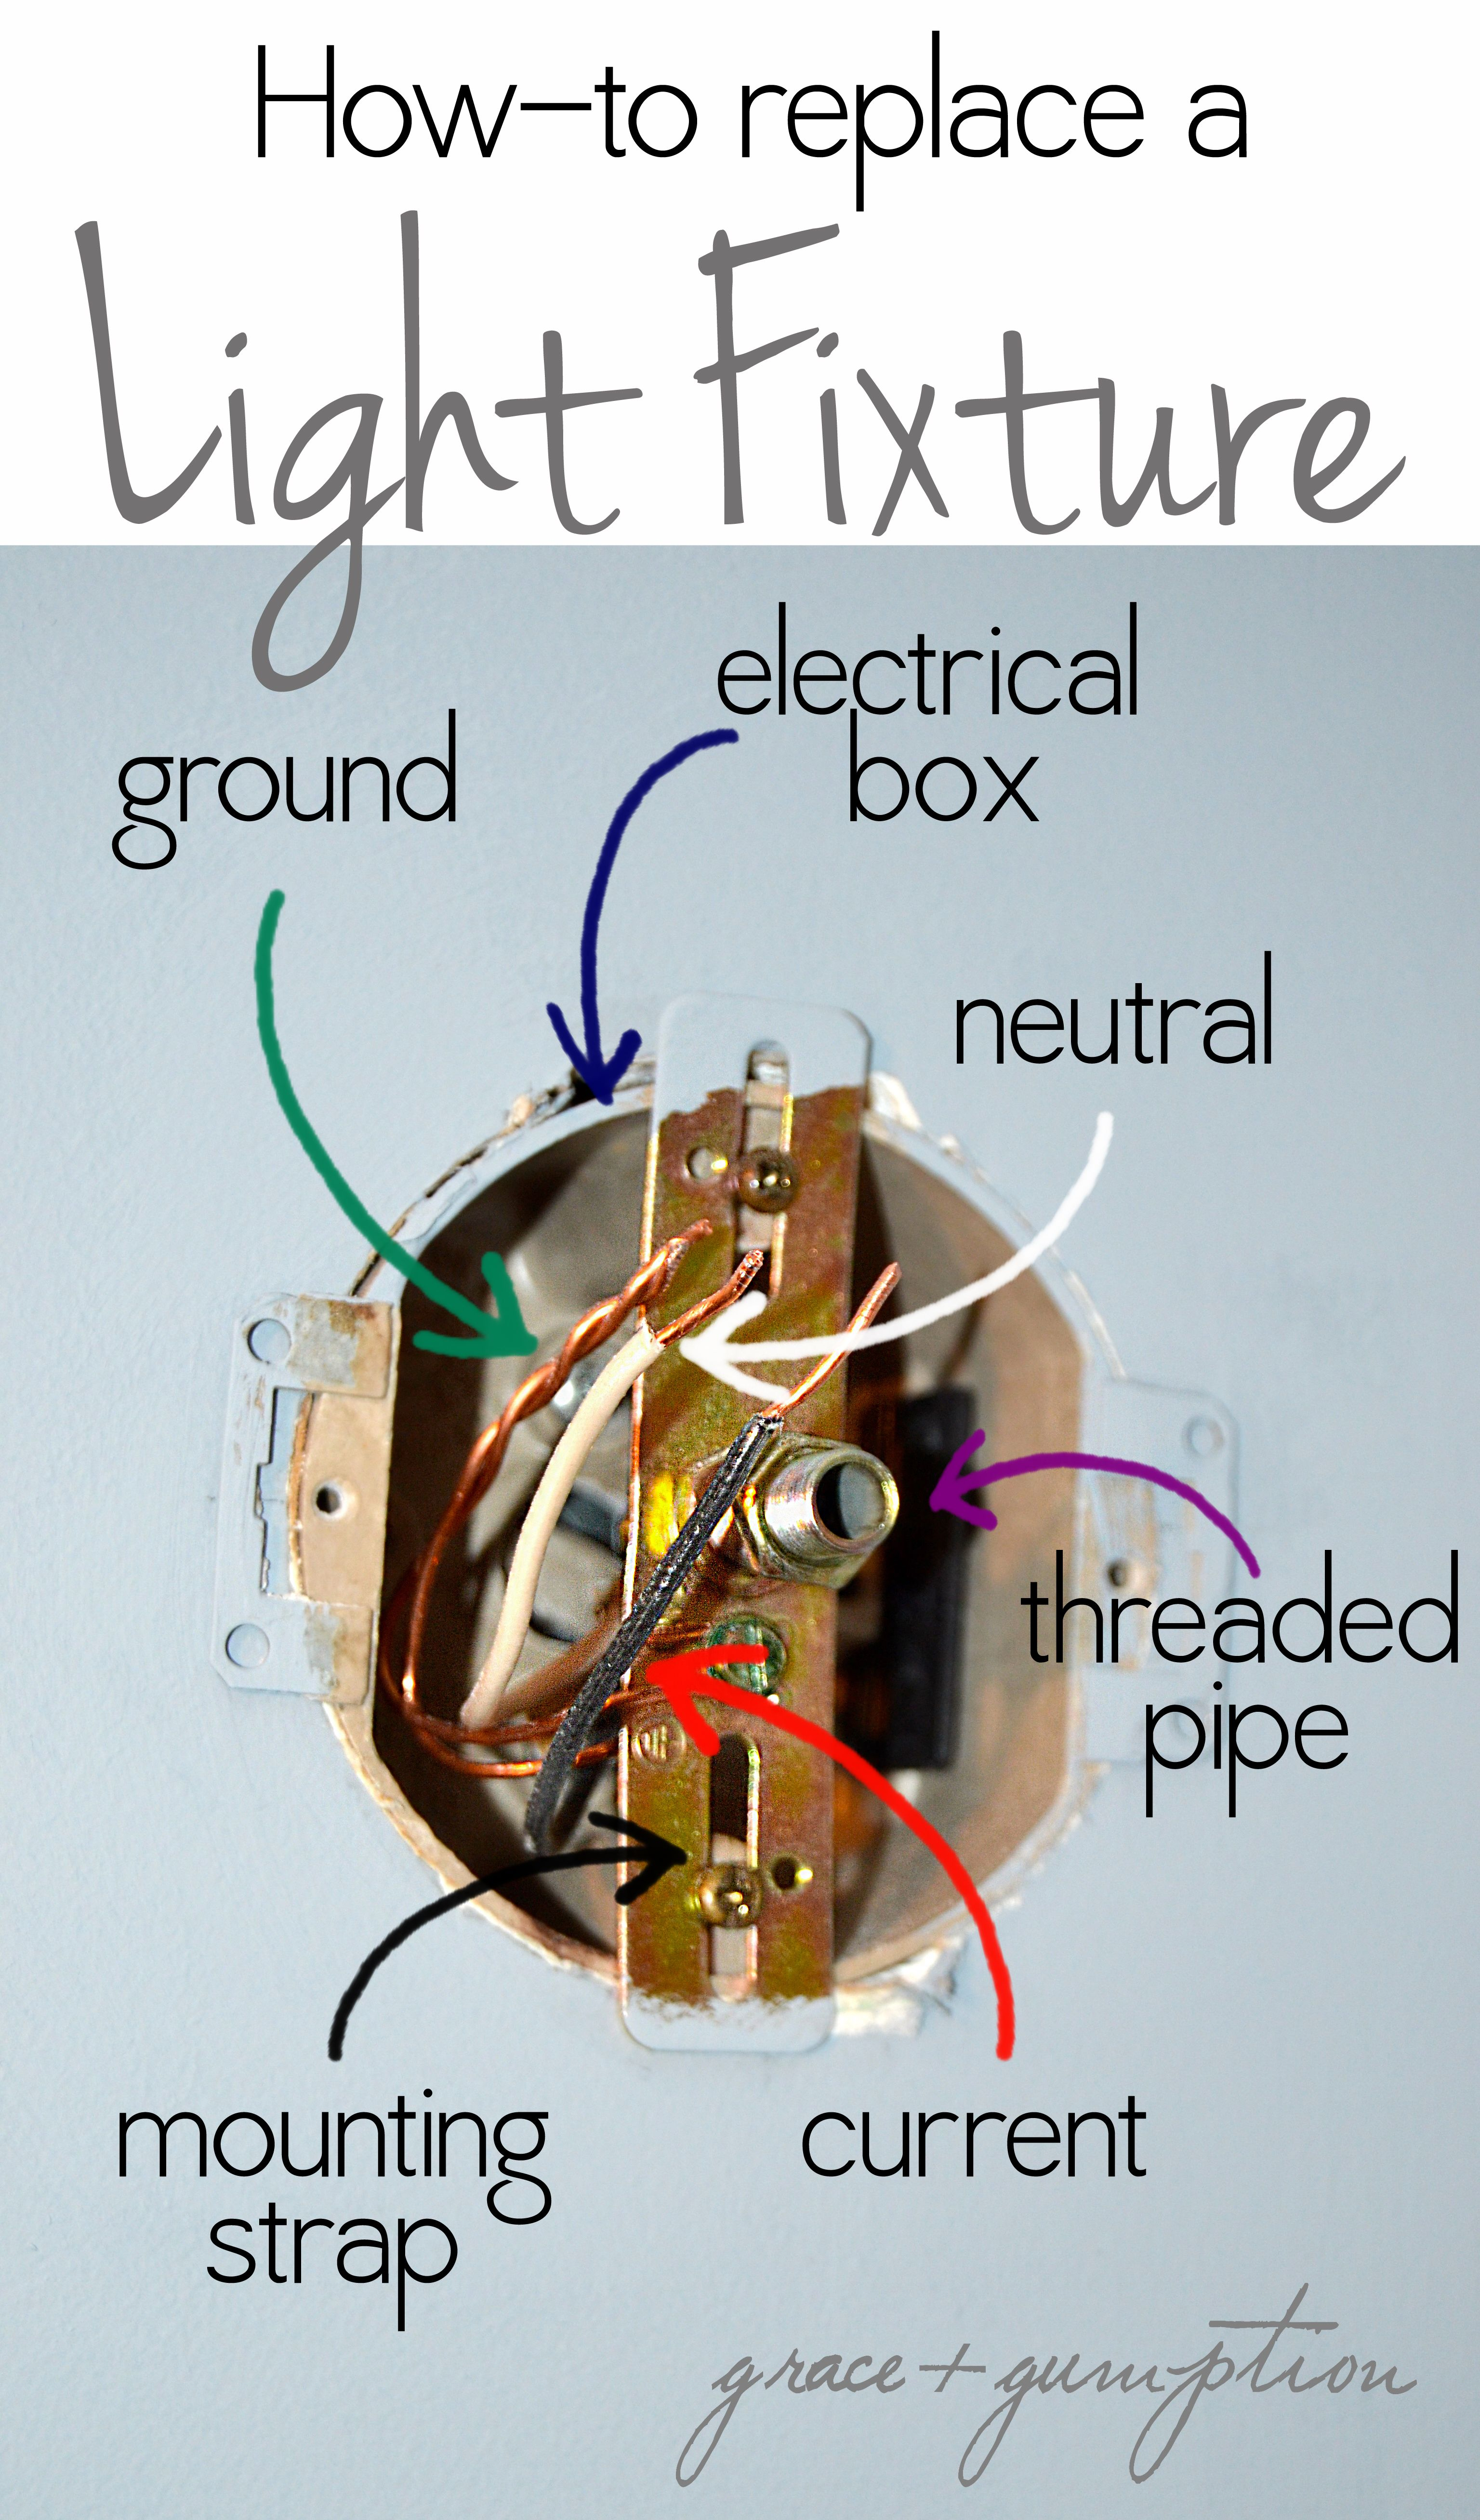 How To Replace A Light Fixture By Grace Gumption